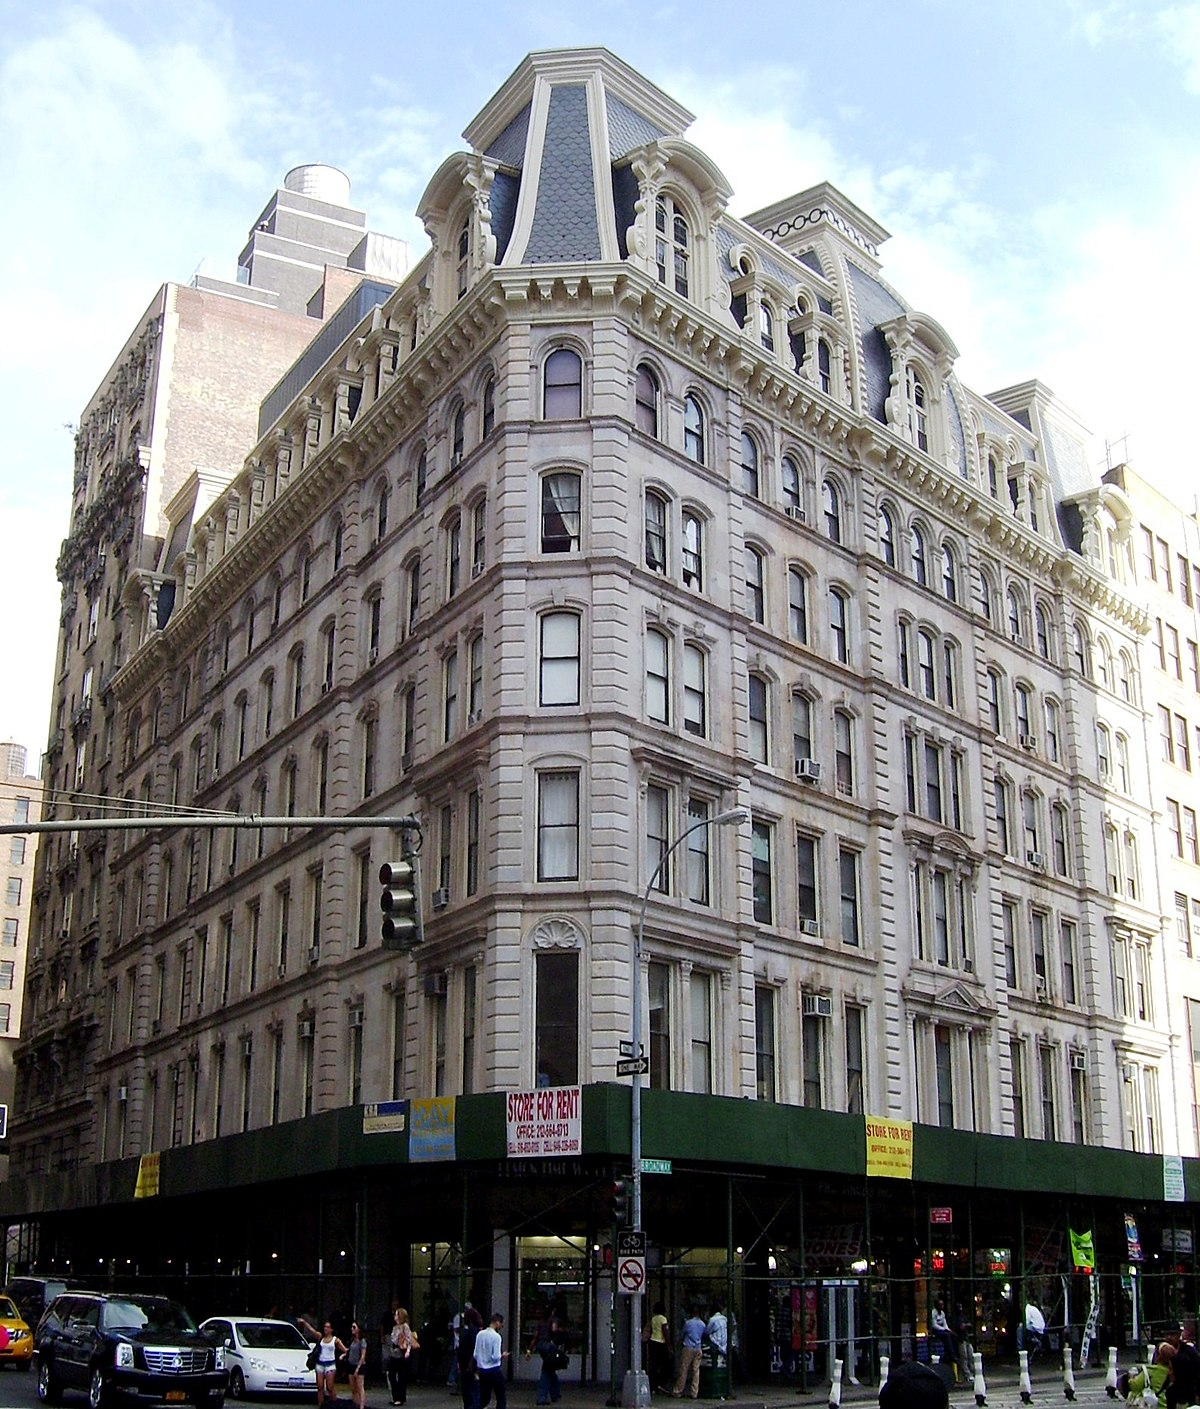 Grand hotel new york city wikipedia for Grand hotel